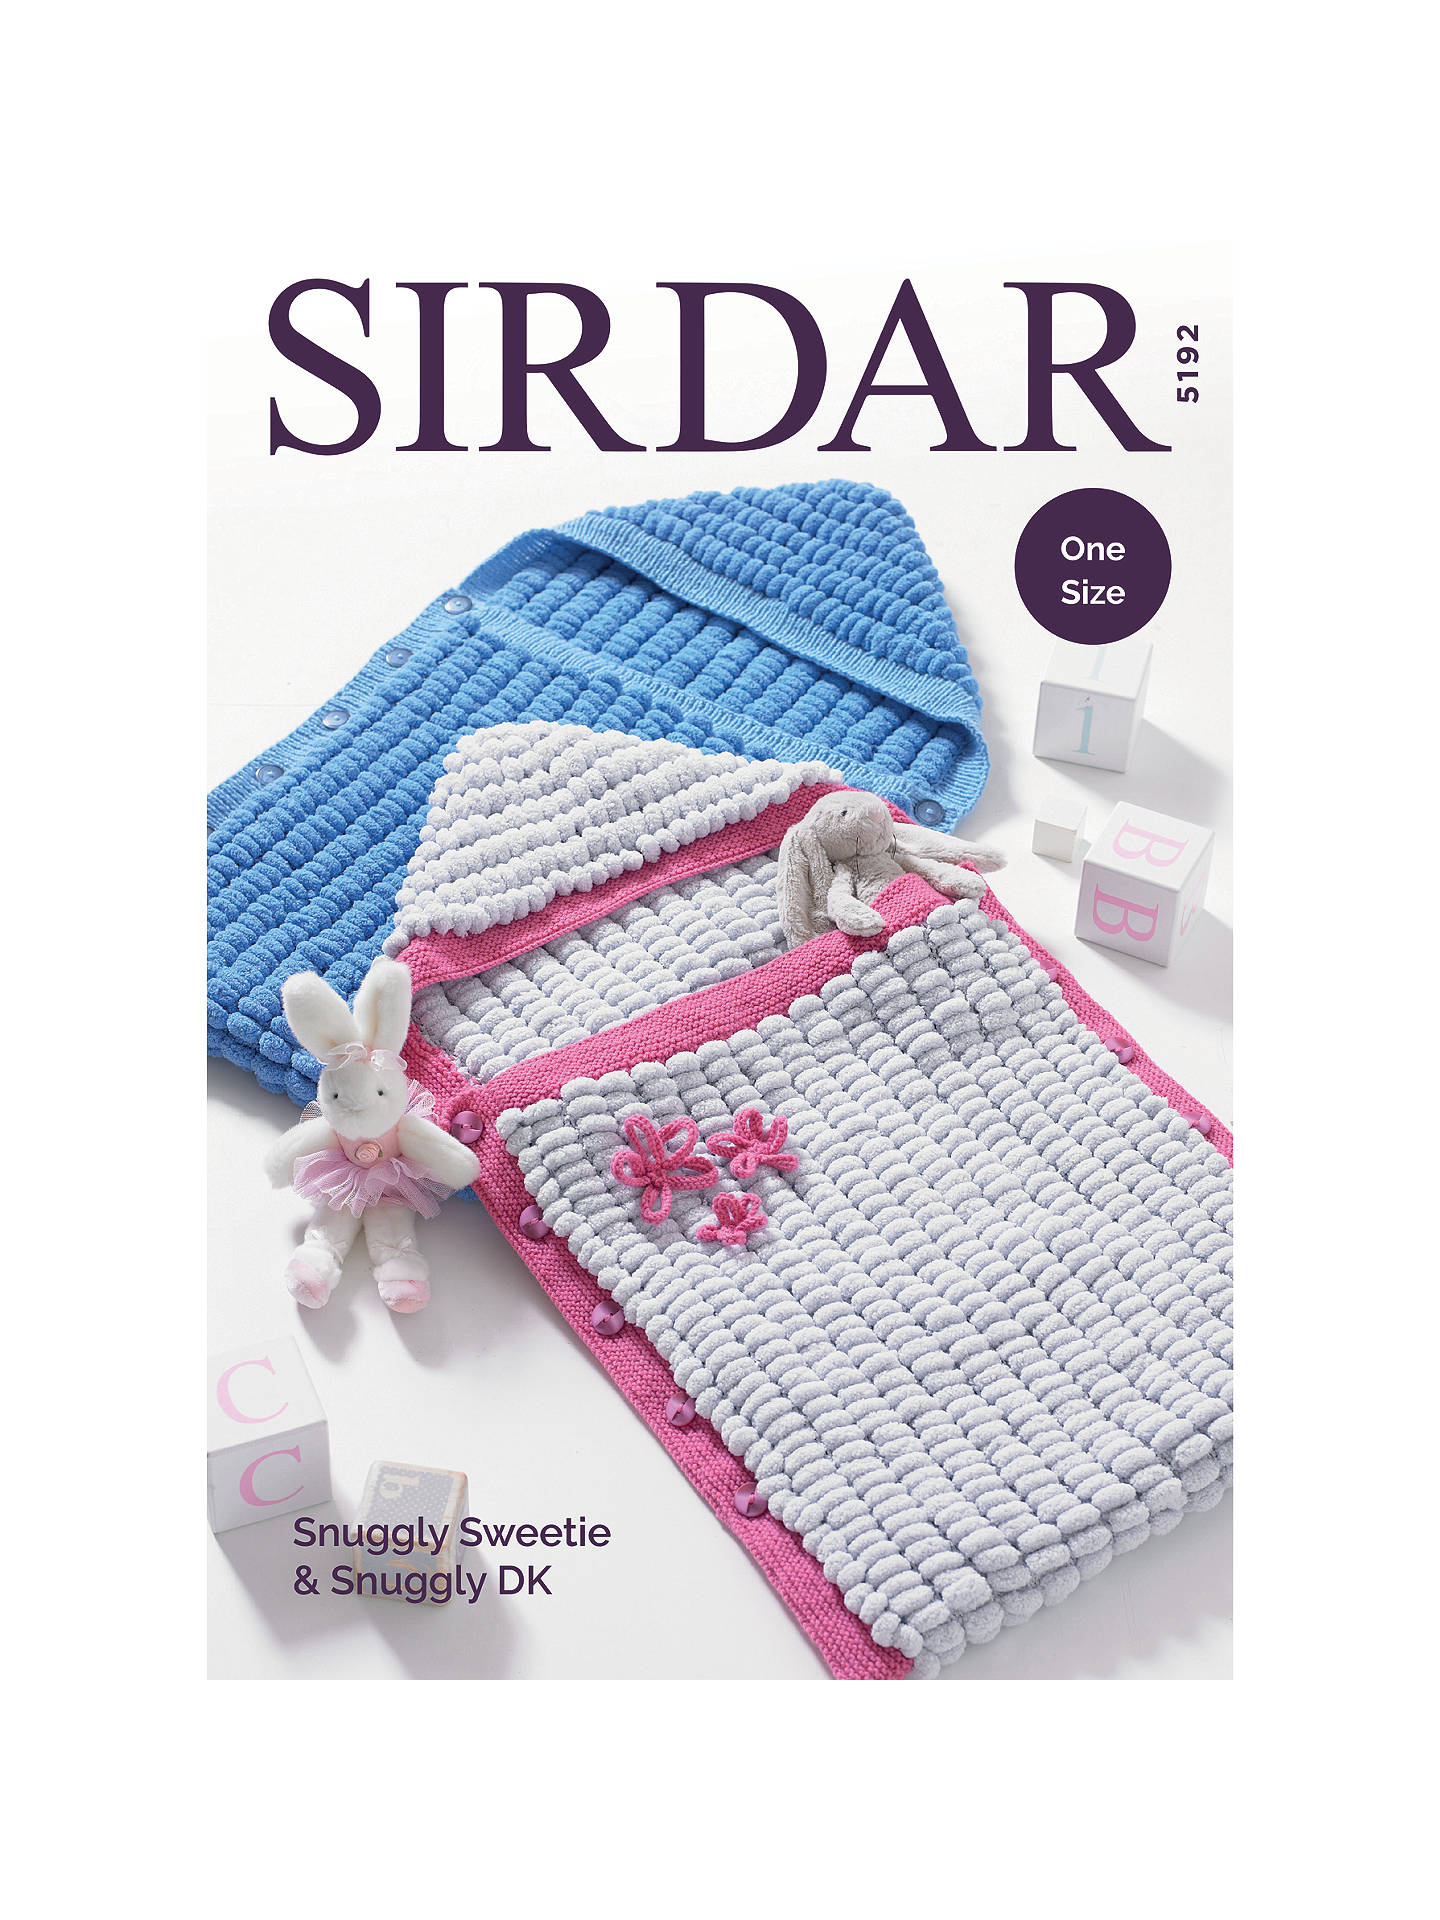 Sirdar Baby Snuggly Sweetie And Dk Blankets Knitting Pattern Book